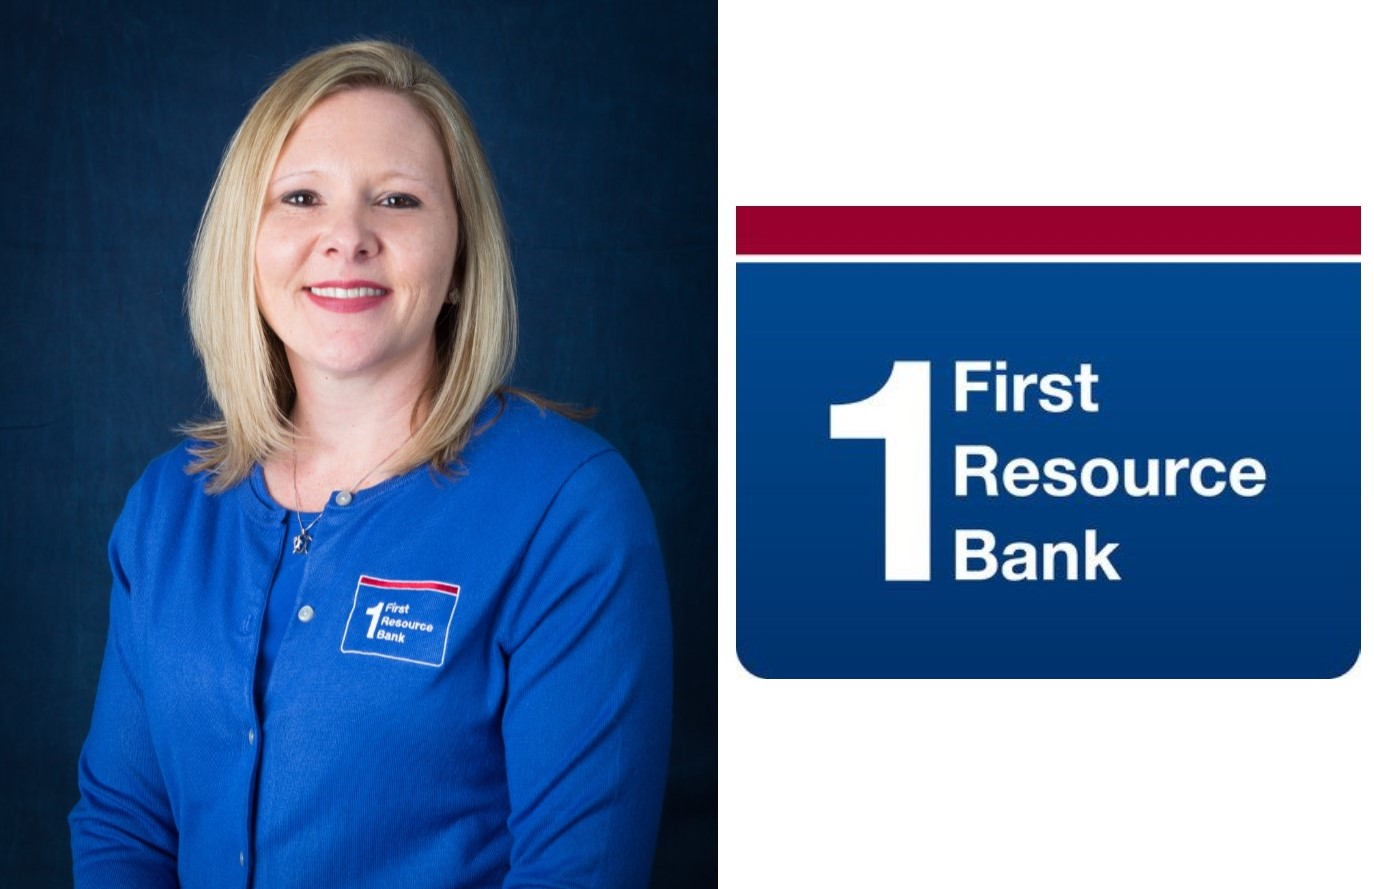 First Resource Bank's Diana Mattingly Elected Chairperson of ERCC's Board of Directors